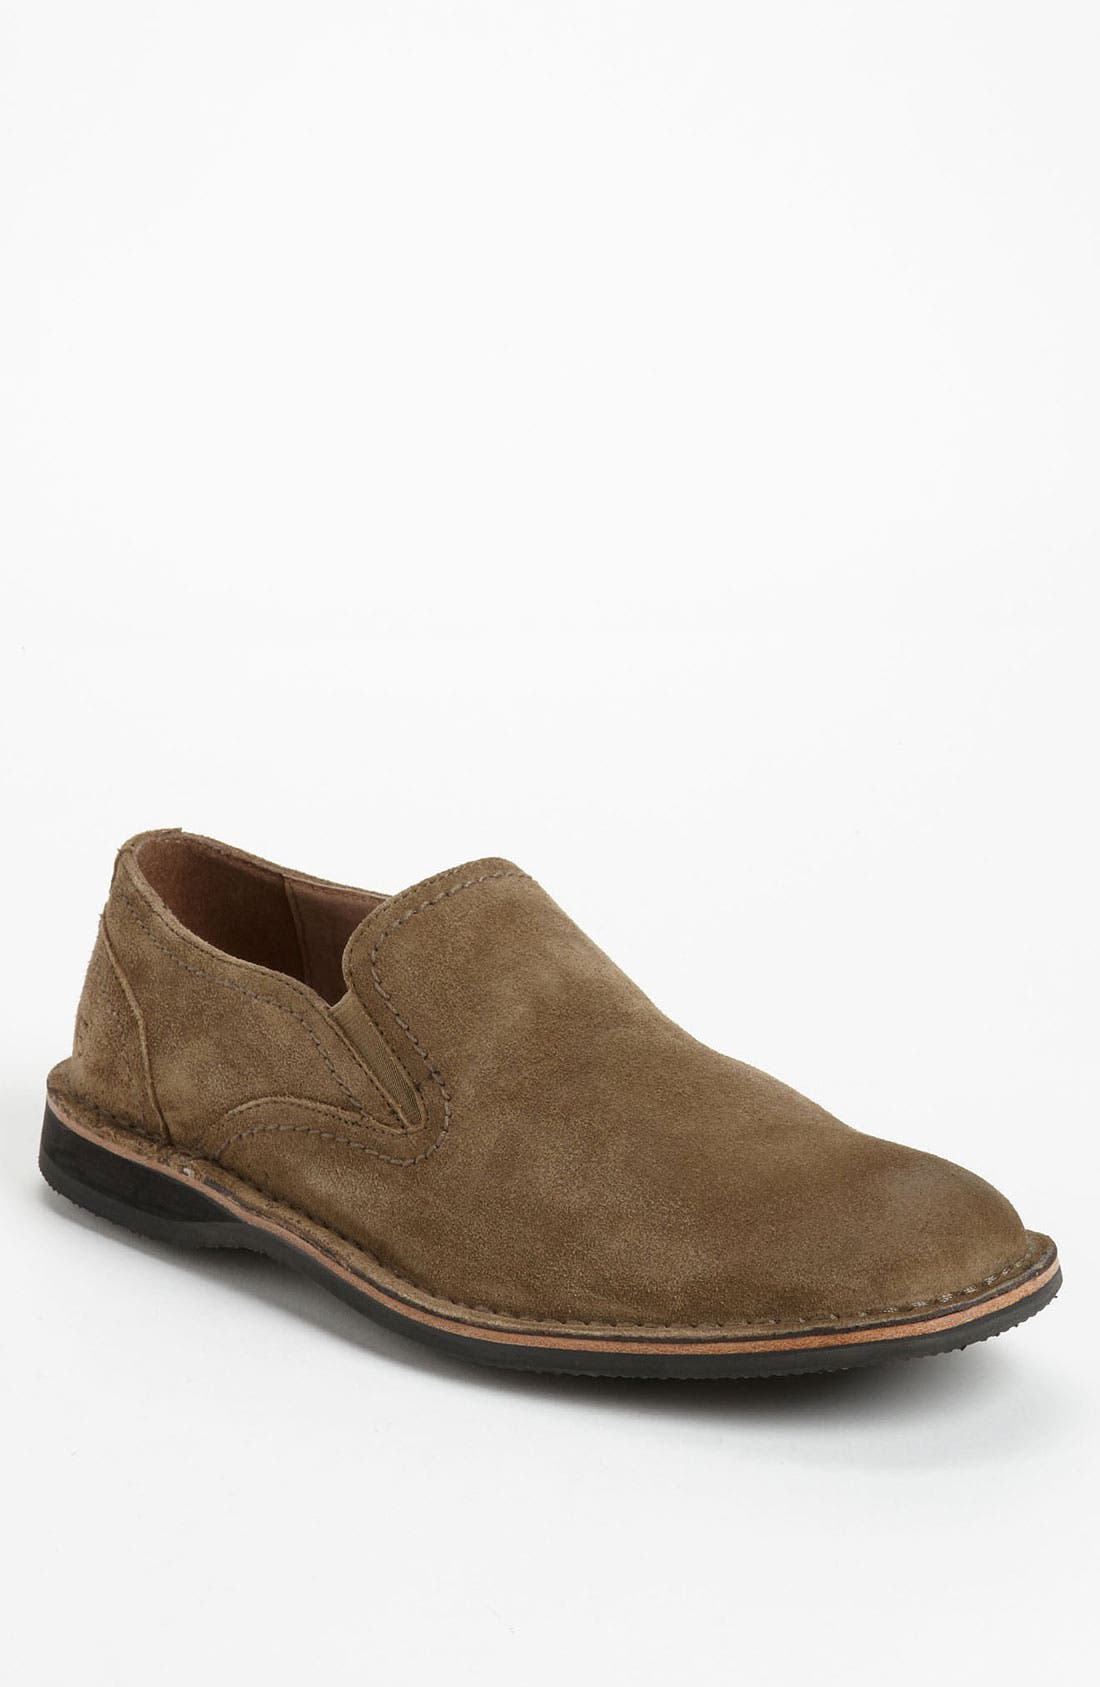 Main Image - Andrew Marc 'Dorchester' Slip-On (Online Only) (Men)